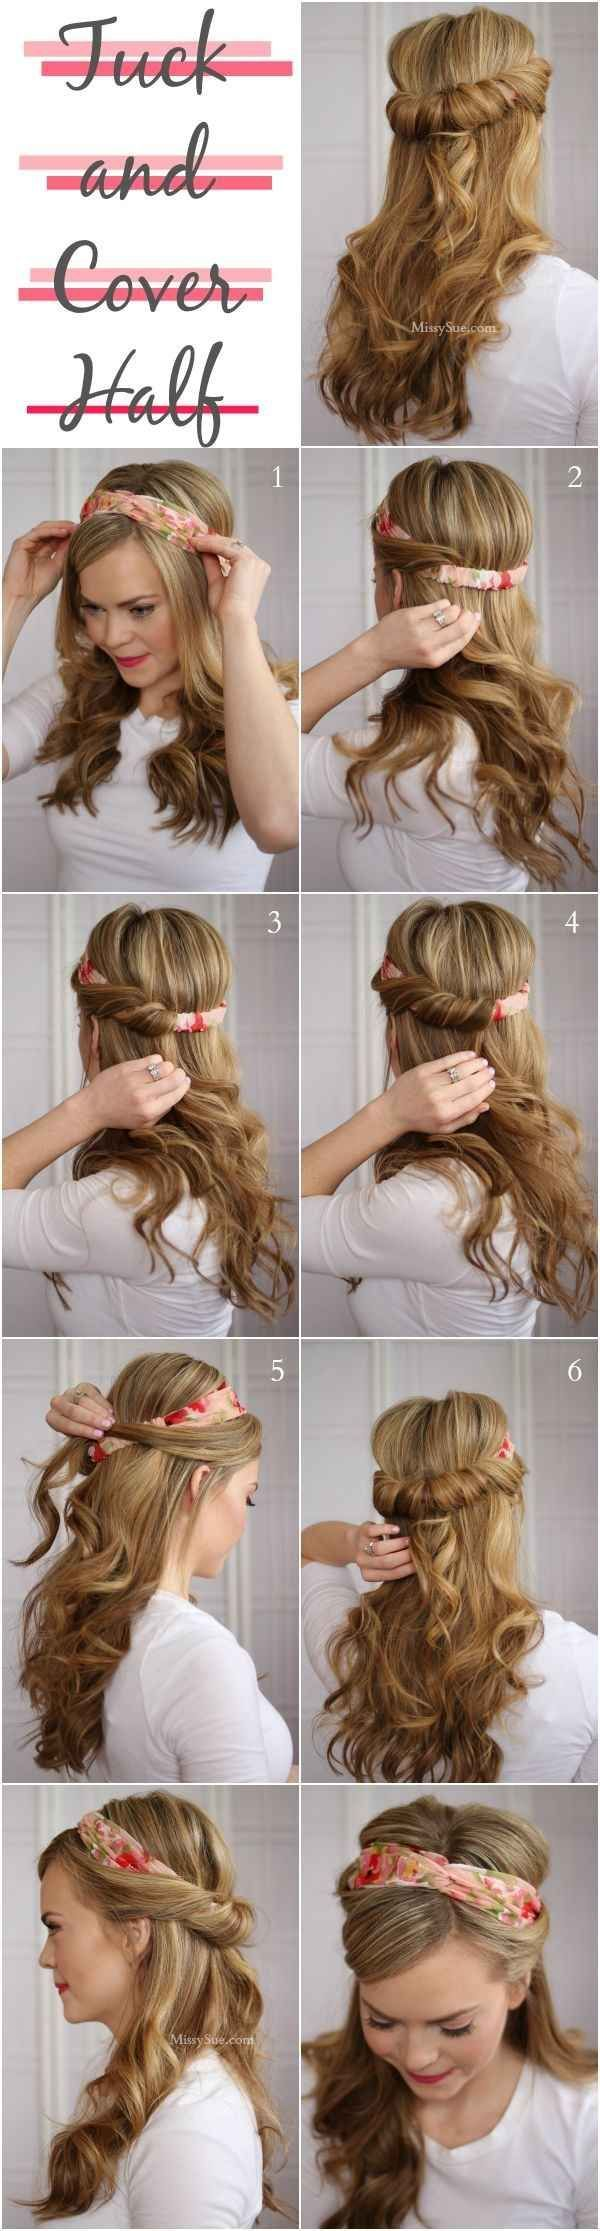 easy hairstyles for long thick hair you can try sexy long